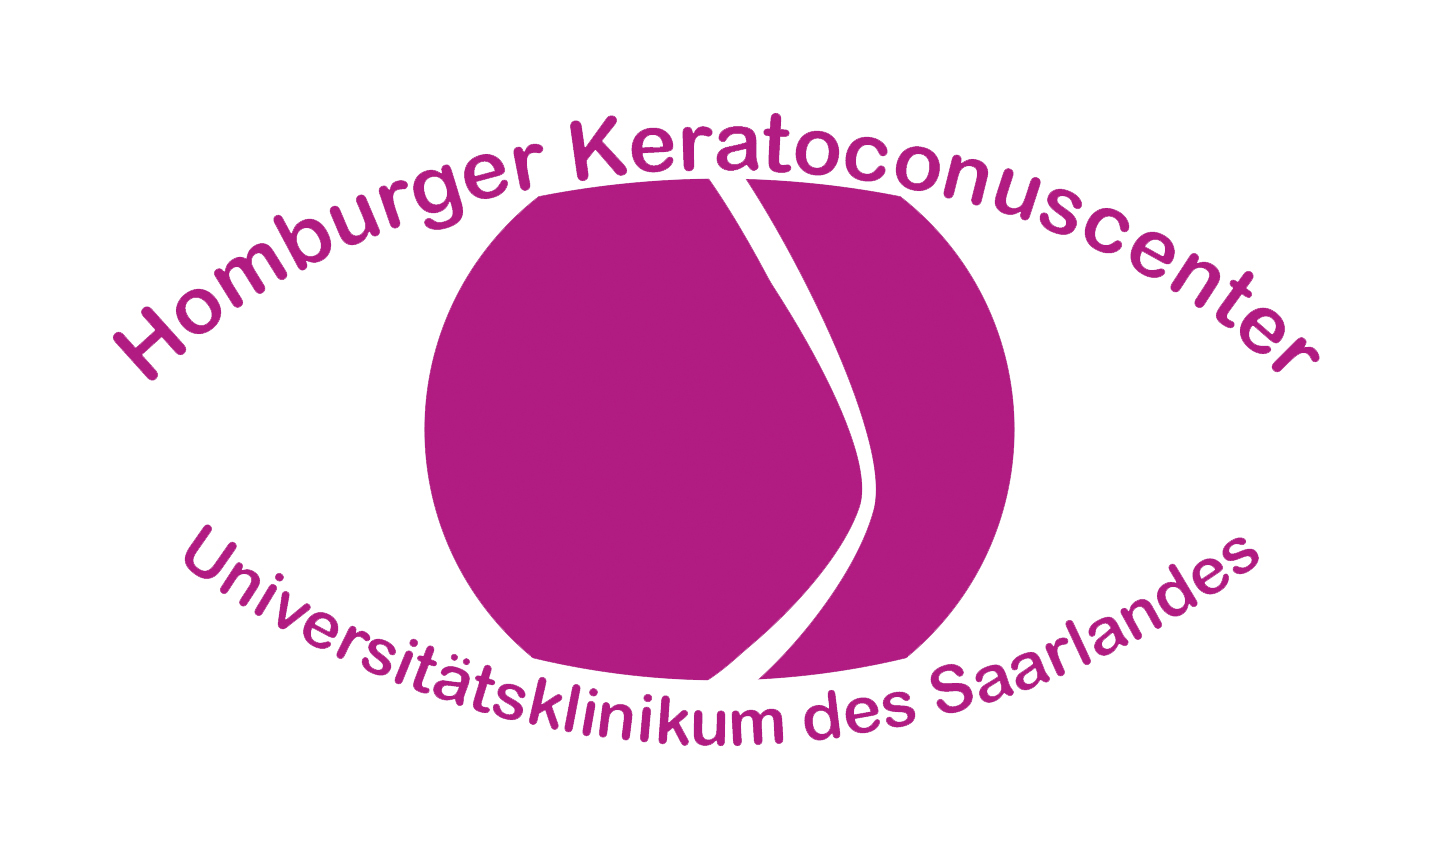 Homburger Keratoconuscenter